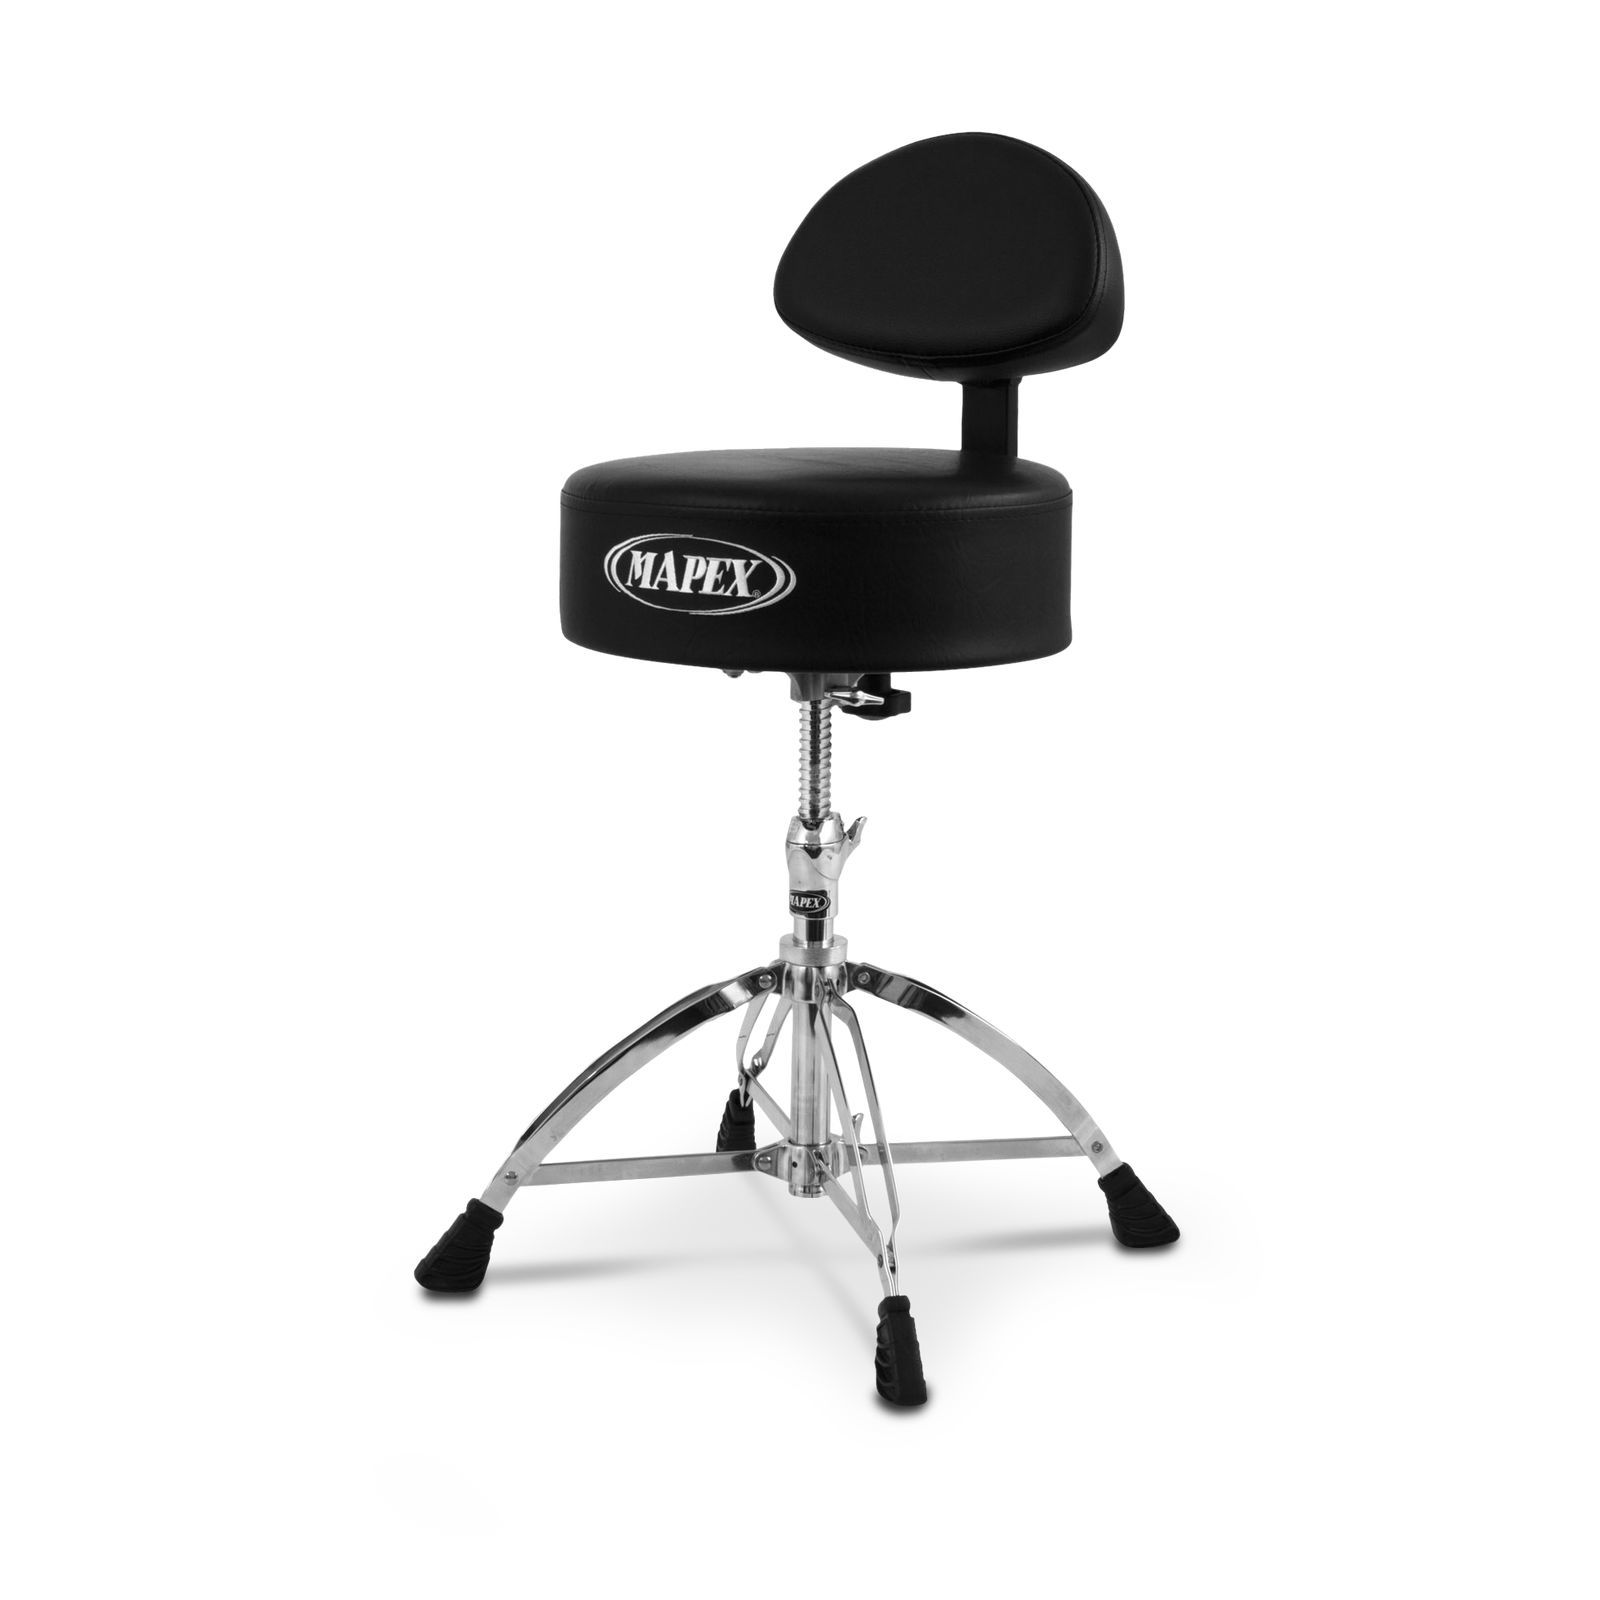 Mapex Drum Throne T770, round seat Изображение товара